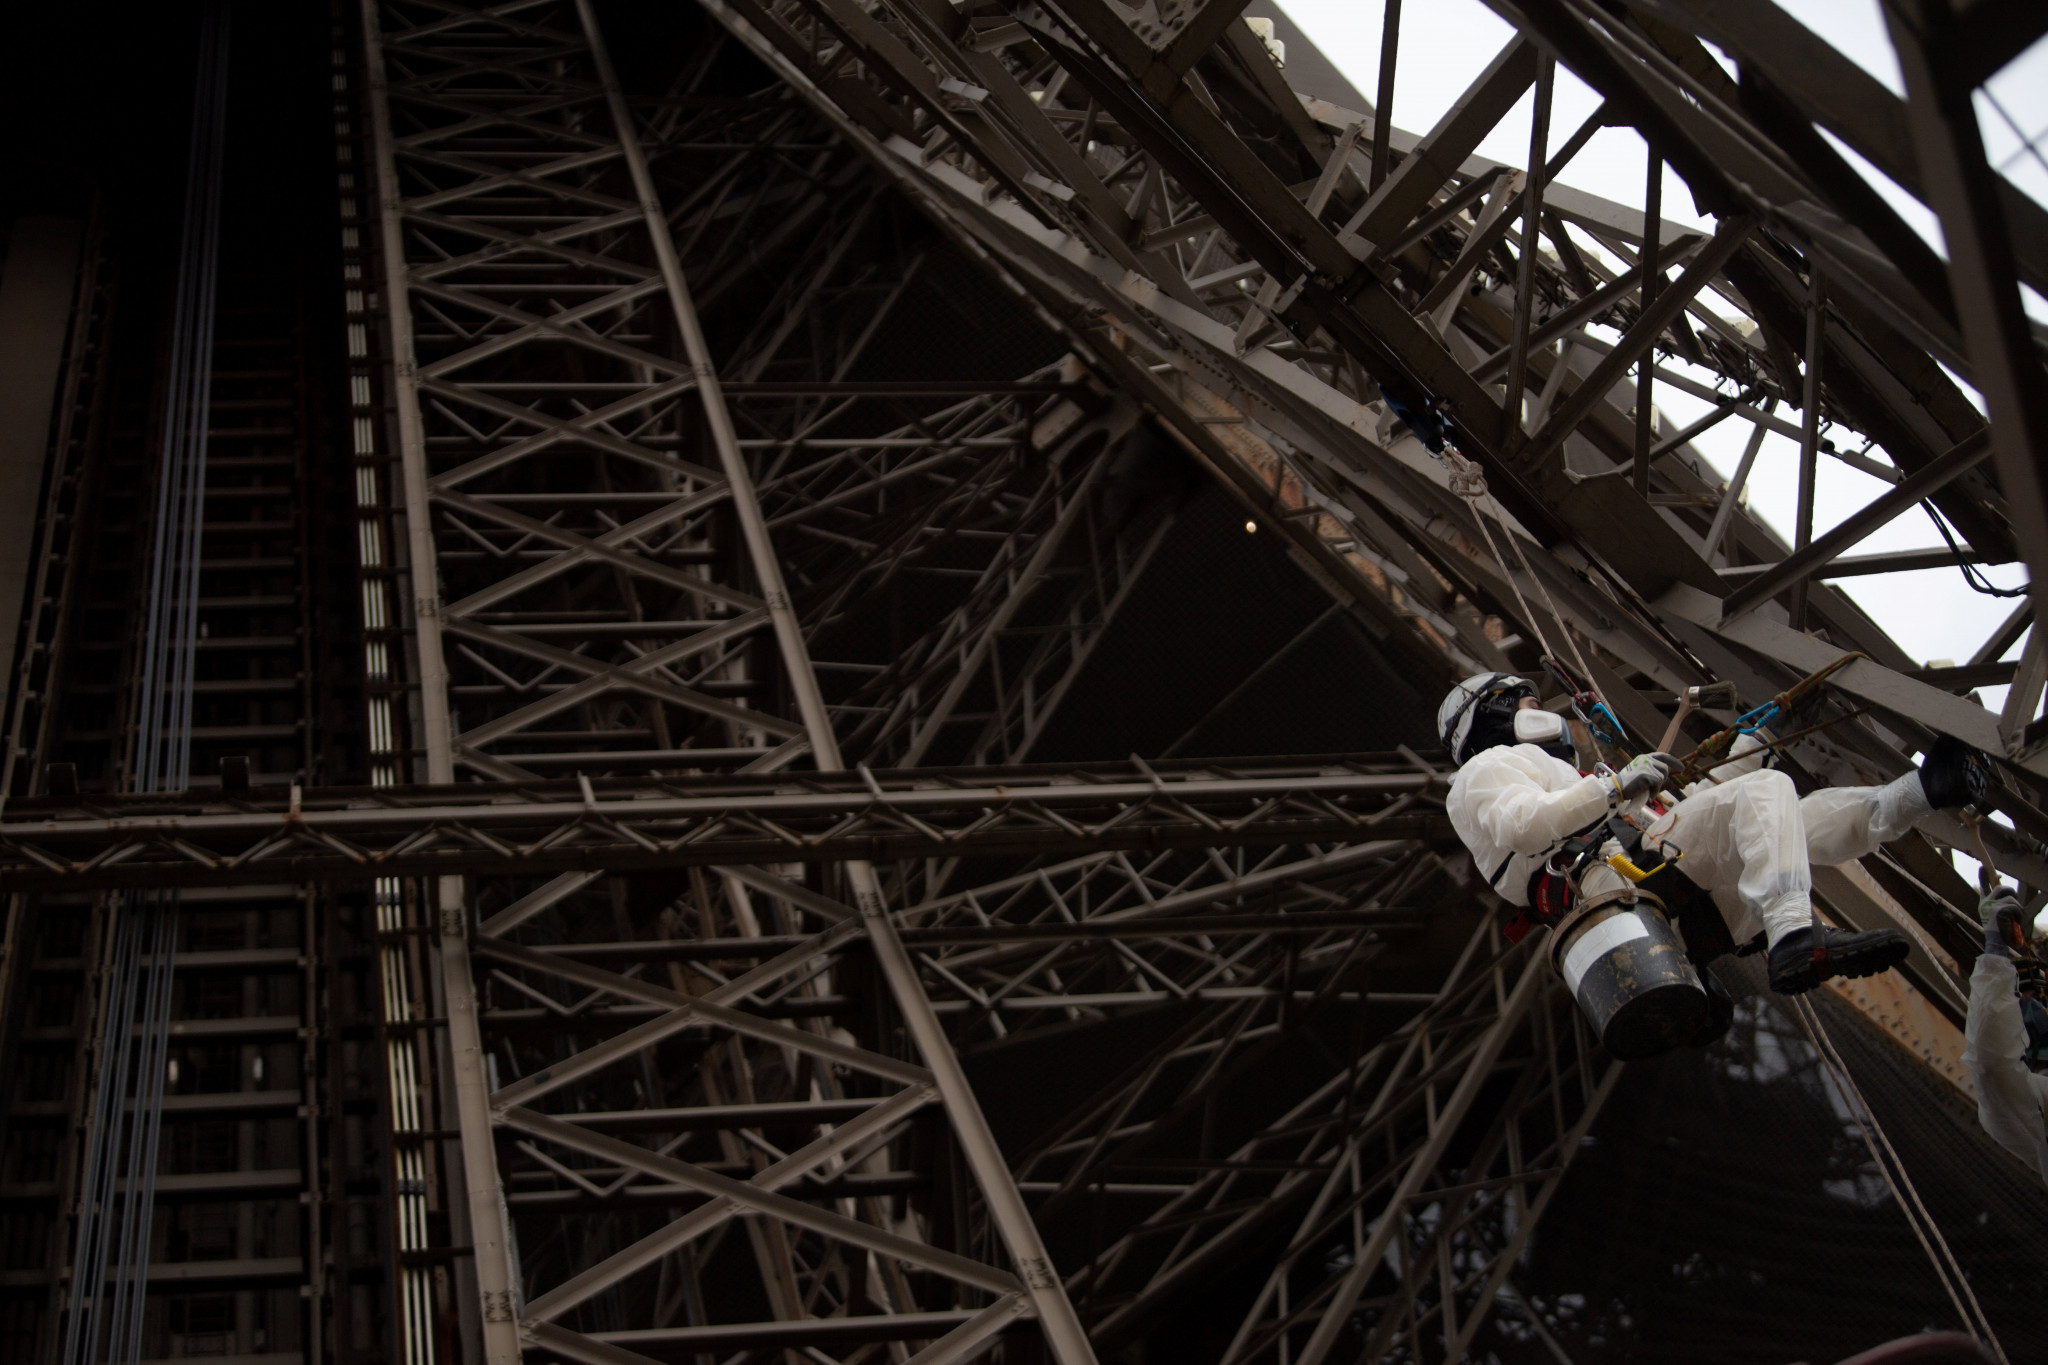 The renovation of the Eiffel Tower is expected to be completed by 2022 ©Getty Images